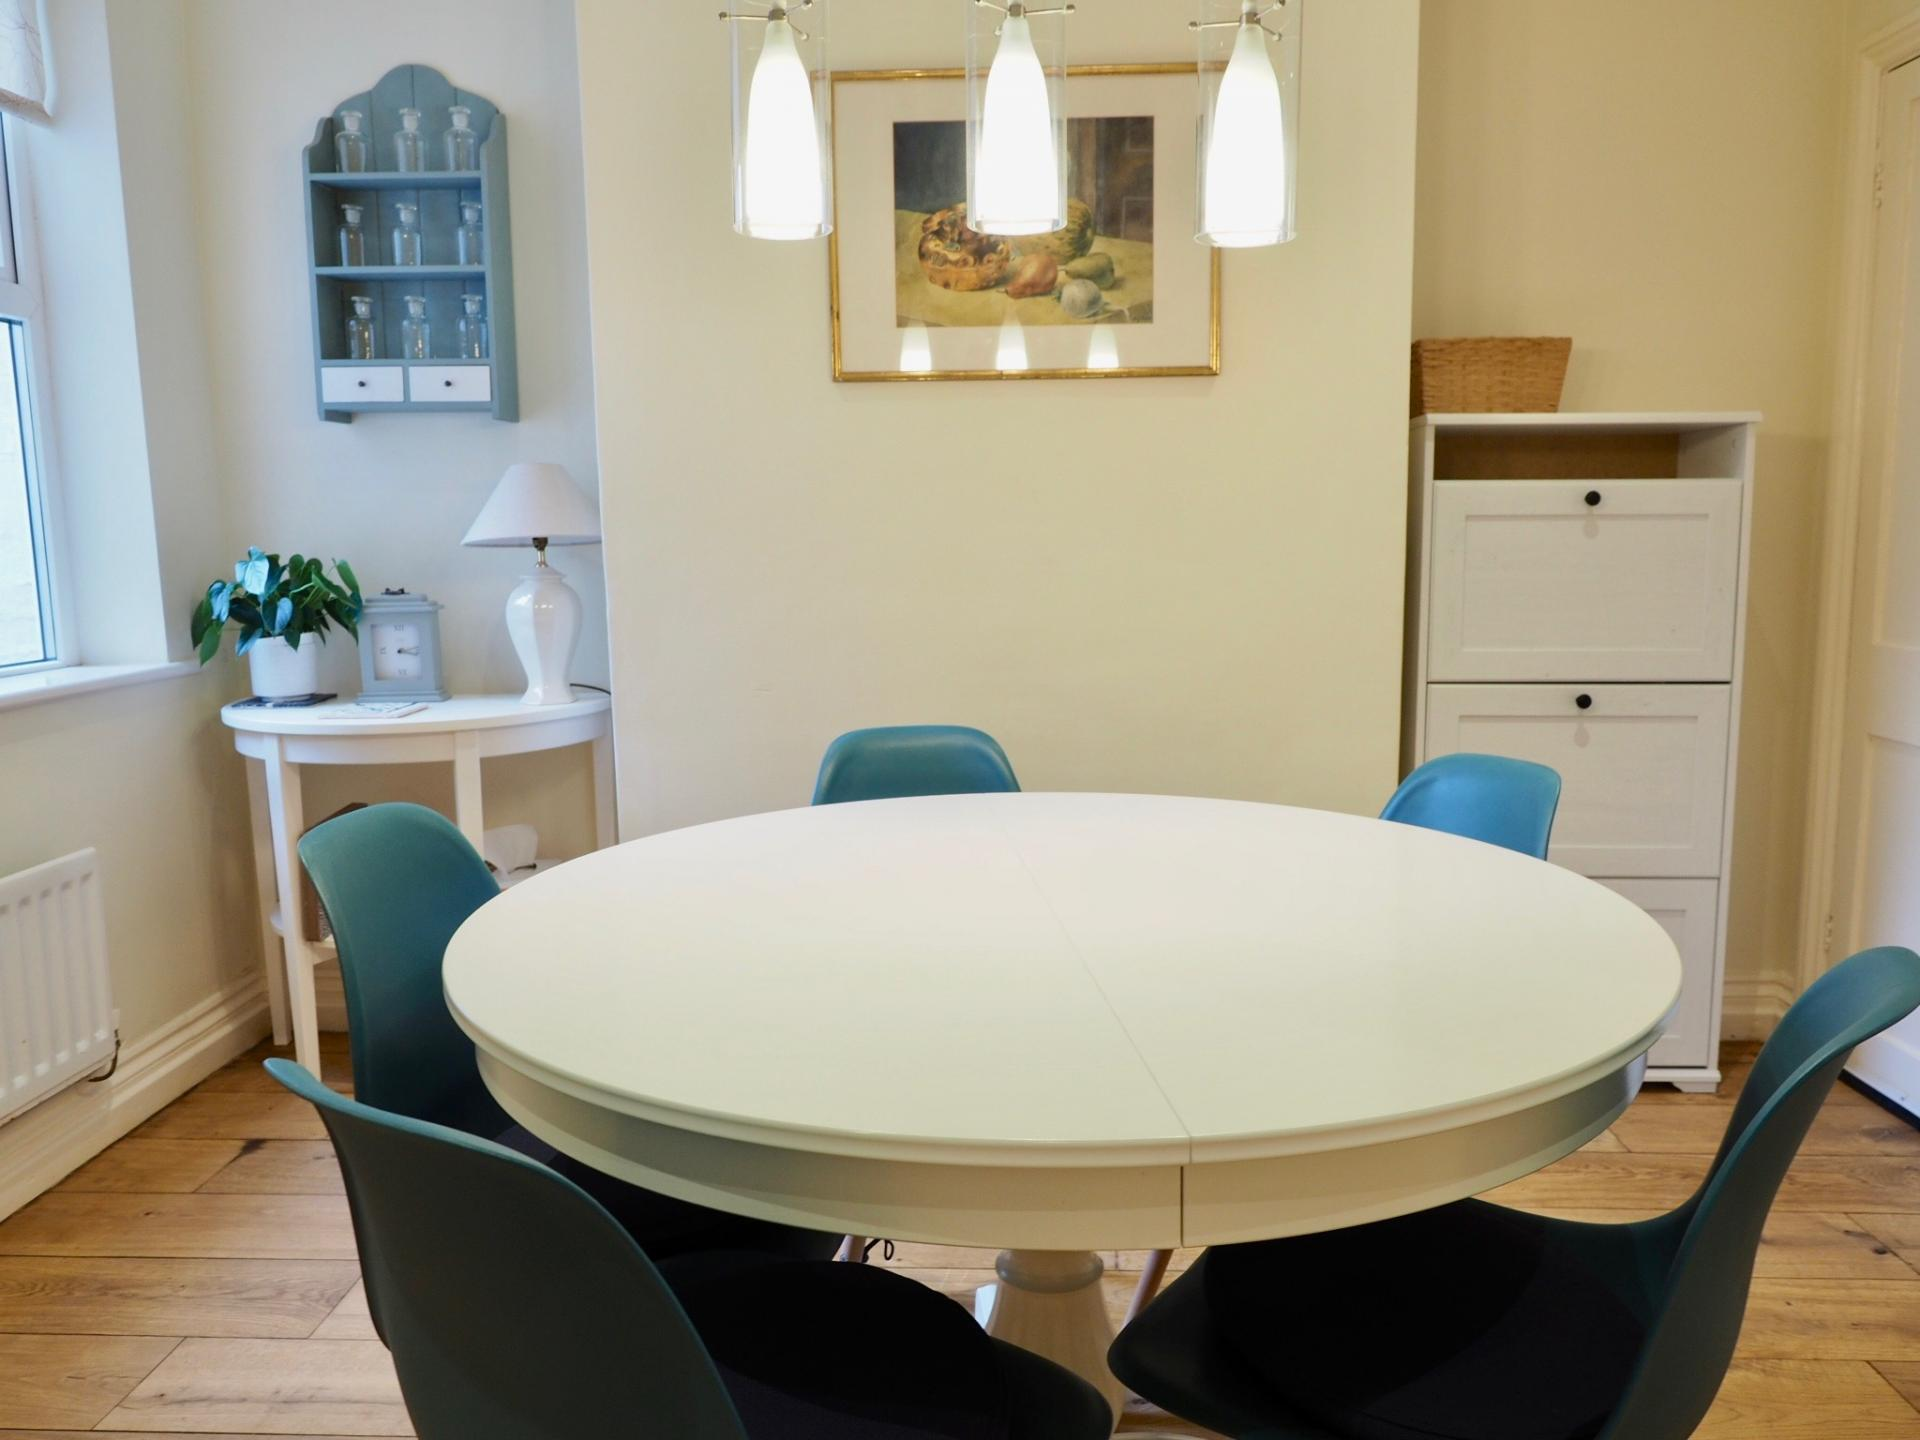 Table at Gordon Street House, Centre, Leamington Spa